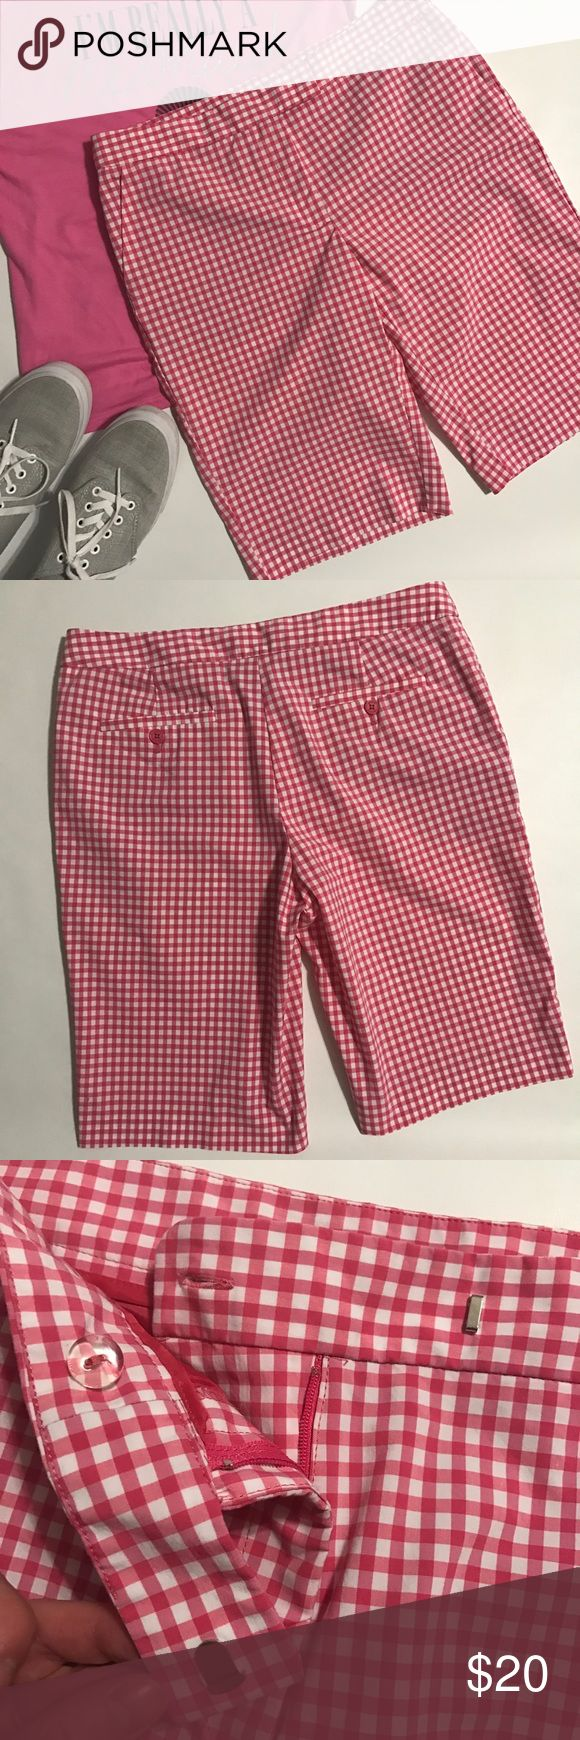 "Jones New York Signature Stretch Bermuda Shorts EUC pink and white gingham fabric for these beautiful Bermuda shorts...Perfect with a Blouse and flats, tank and flip flops or t-shirt and vans can't go wrong 💕 Size 8 they measure about 16.5"" across waist laying flat with an inseam of 12"" Cotton/Nylon and Elastane mixture(pic 5) They hang and feel nice...bundle to save more plus ⚡️📦📫😁💕 Jones New York Shorts Bermudas"